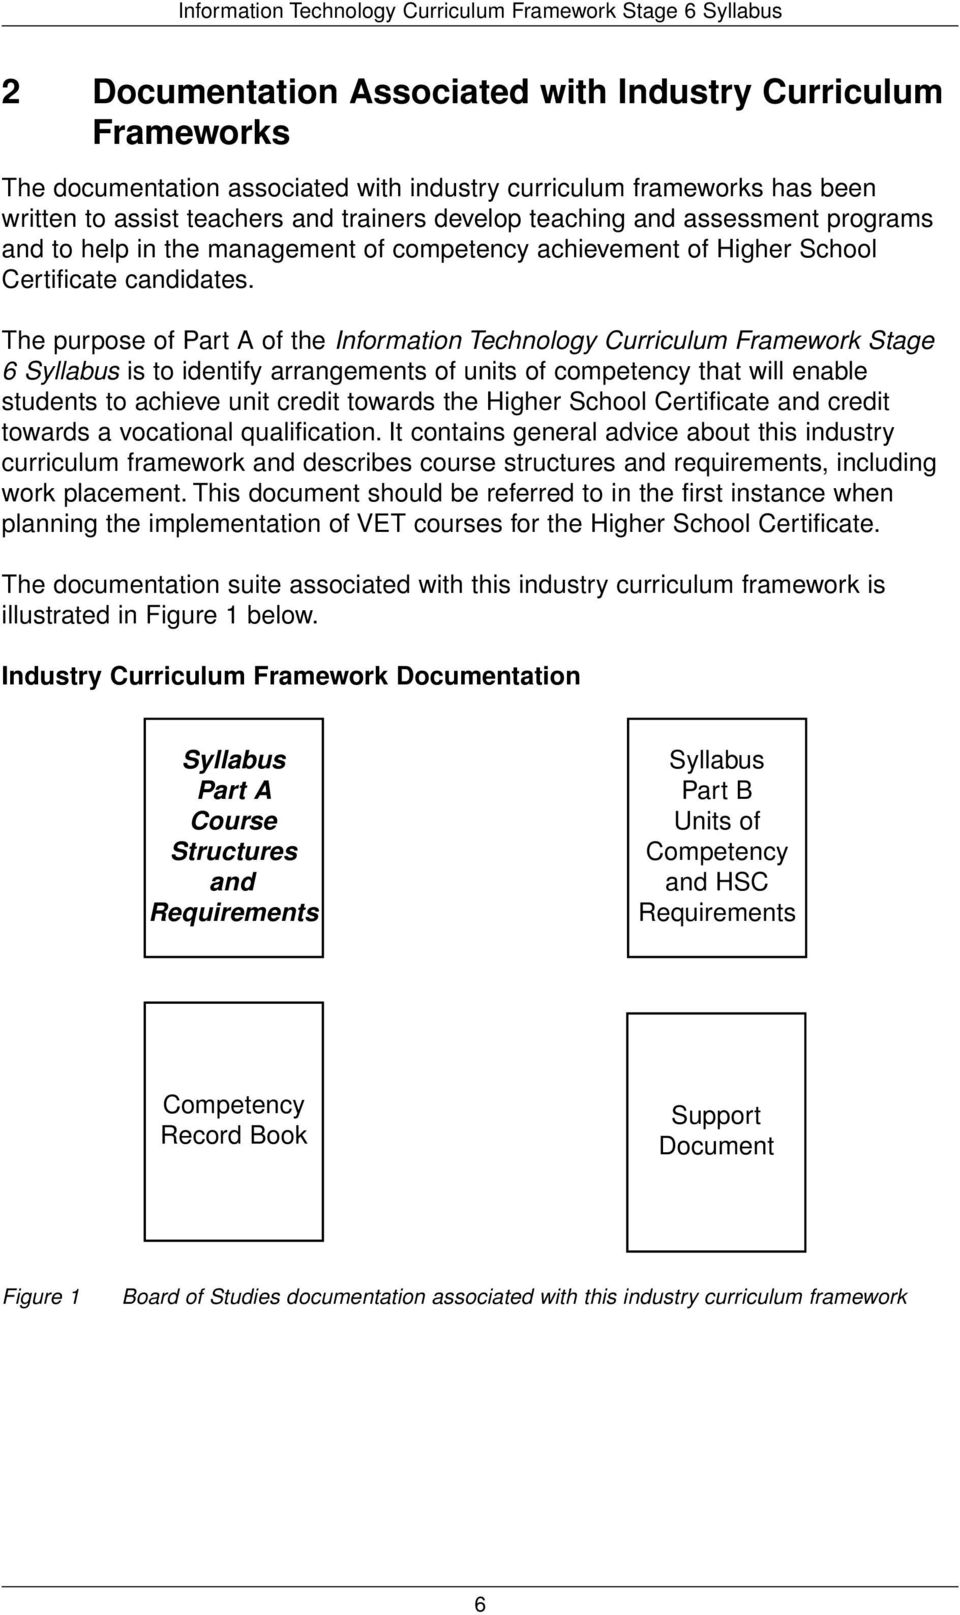 The purpose of Part A of the Information Technology Curriculum Framework Stage 6 Syllabus is to identify arrangements of units of competency that will enable students to achieve unit credit towards